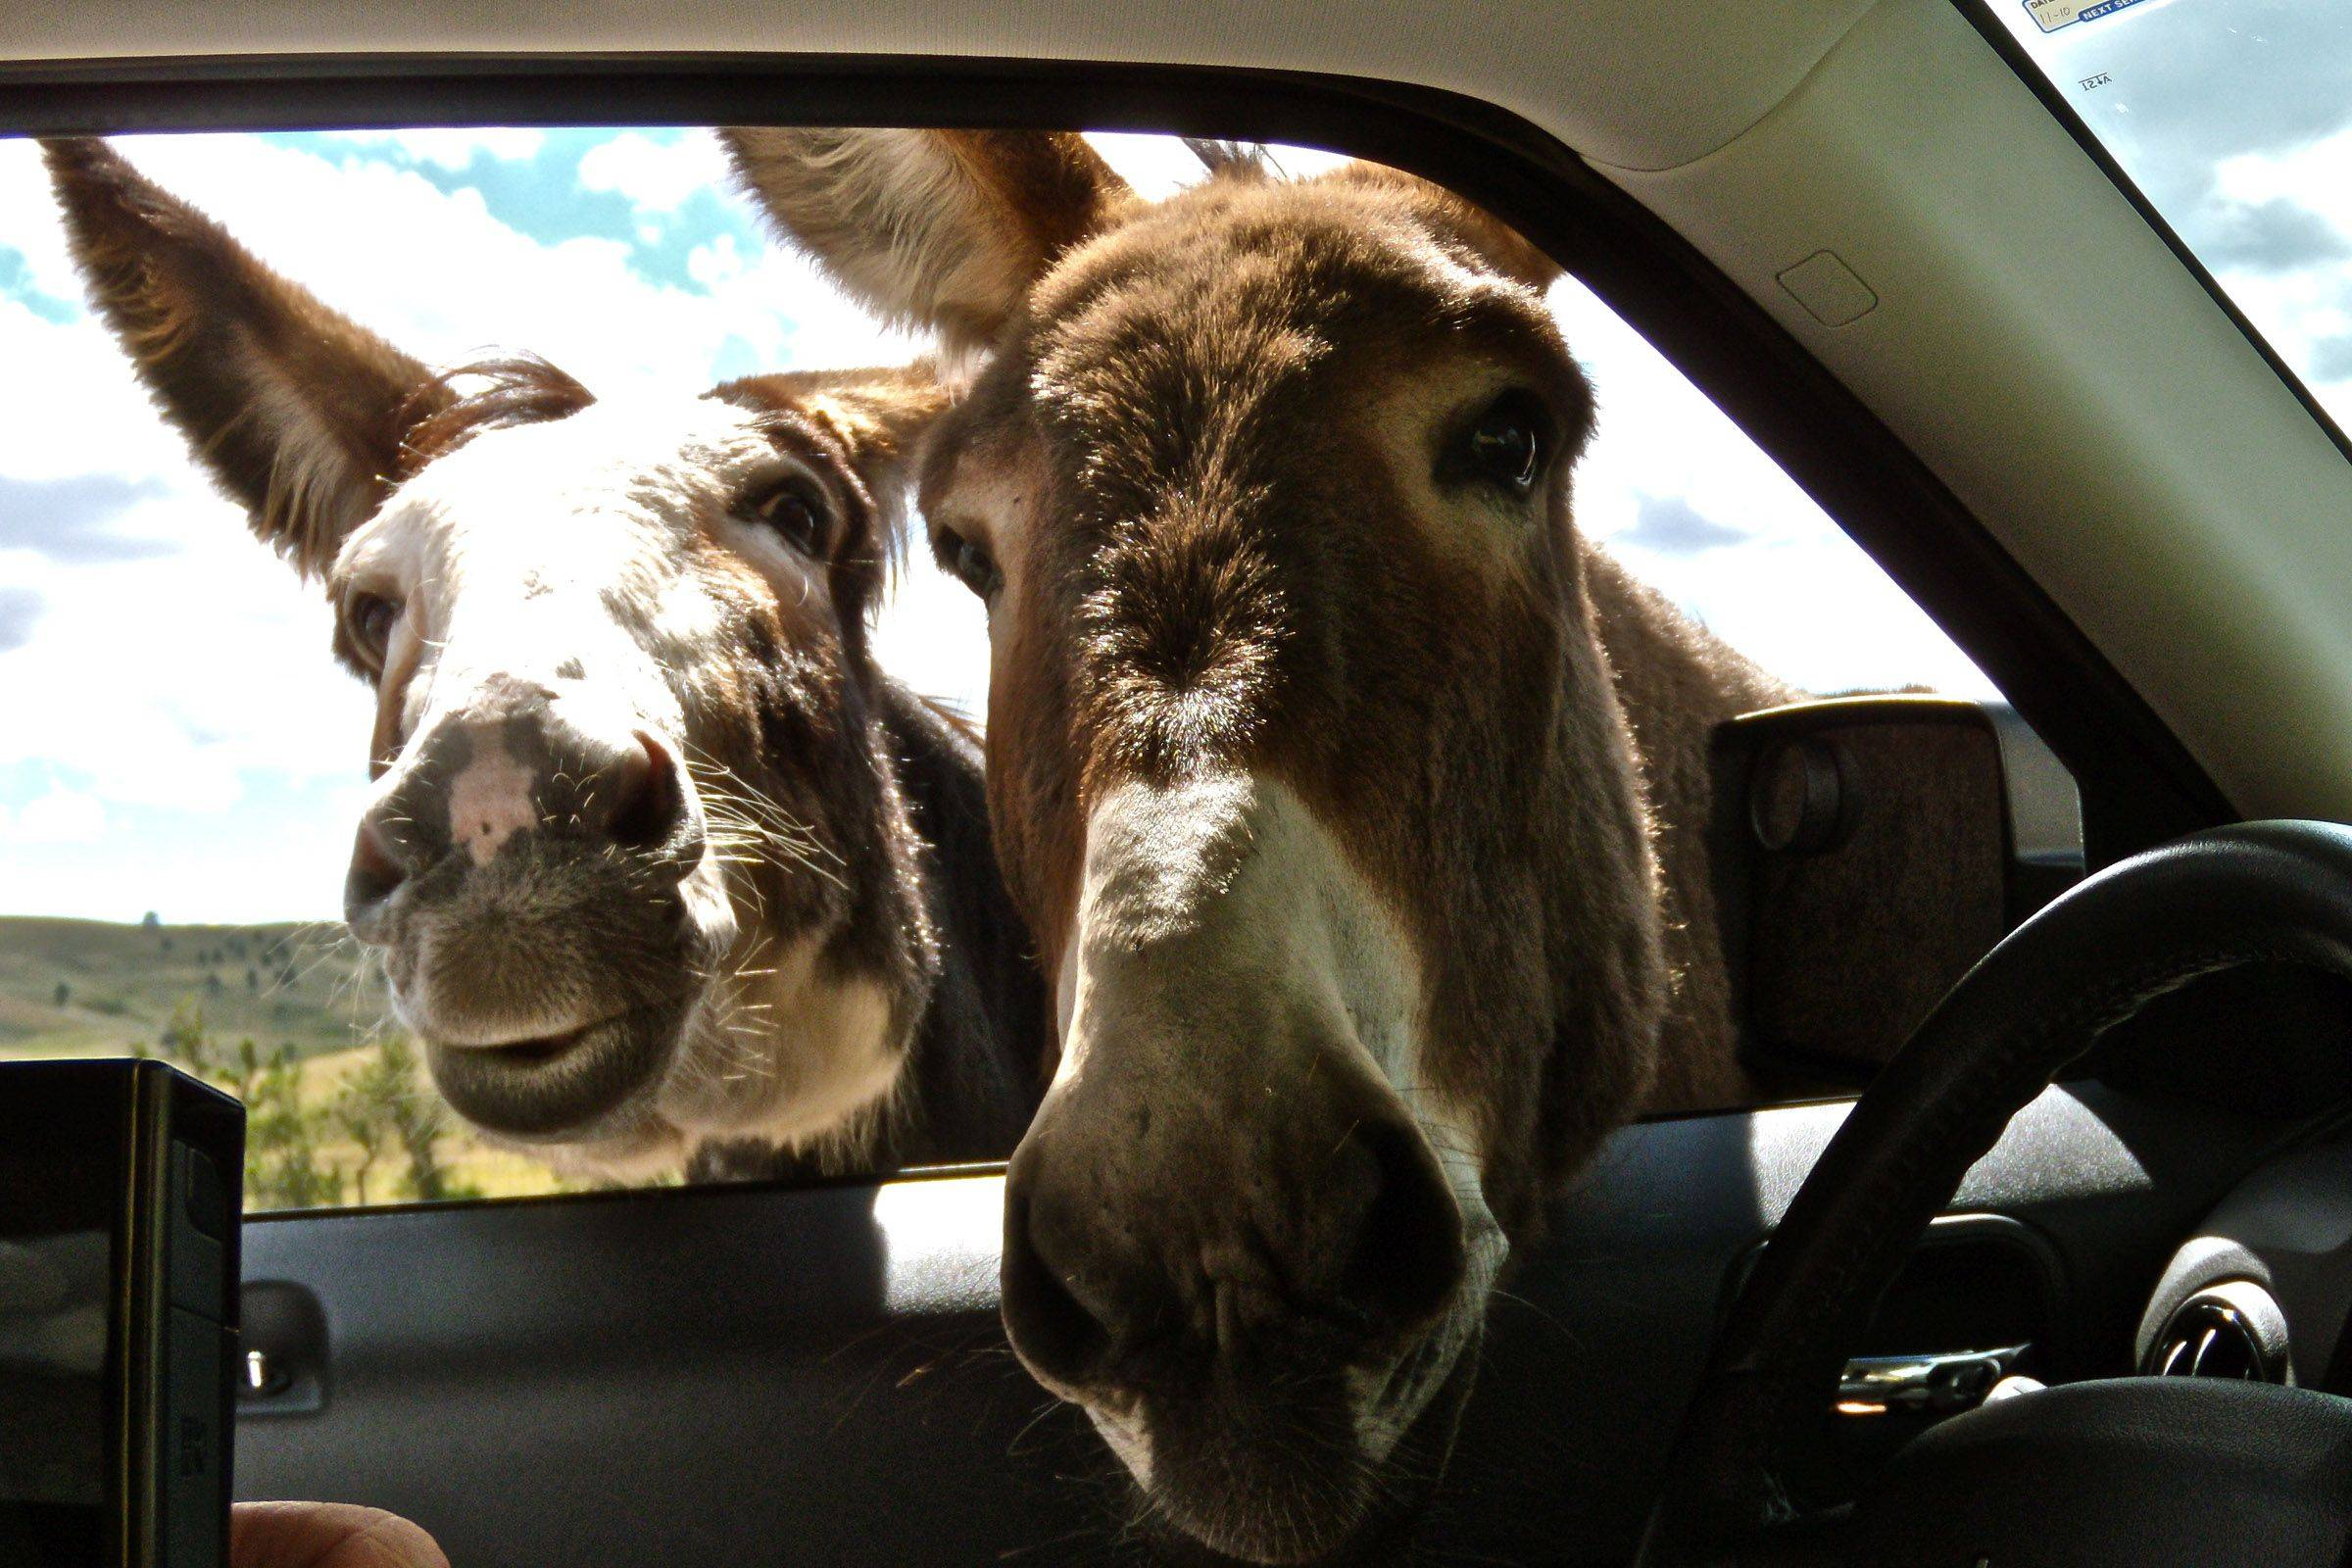 The burros in Custer State Park South Dakota know who has apple slices for them. Getting the burros out of the car is the fun part.